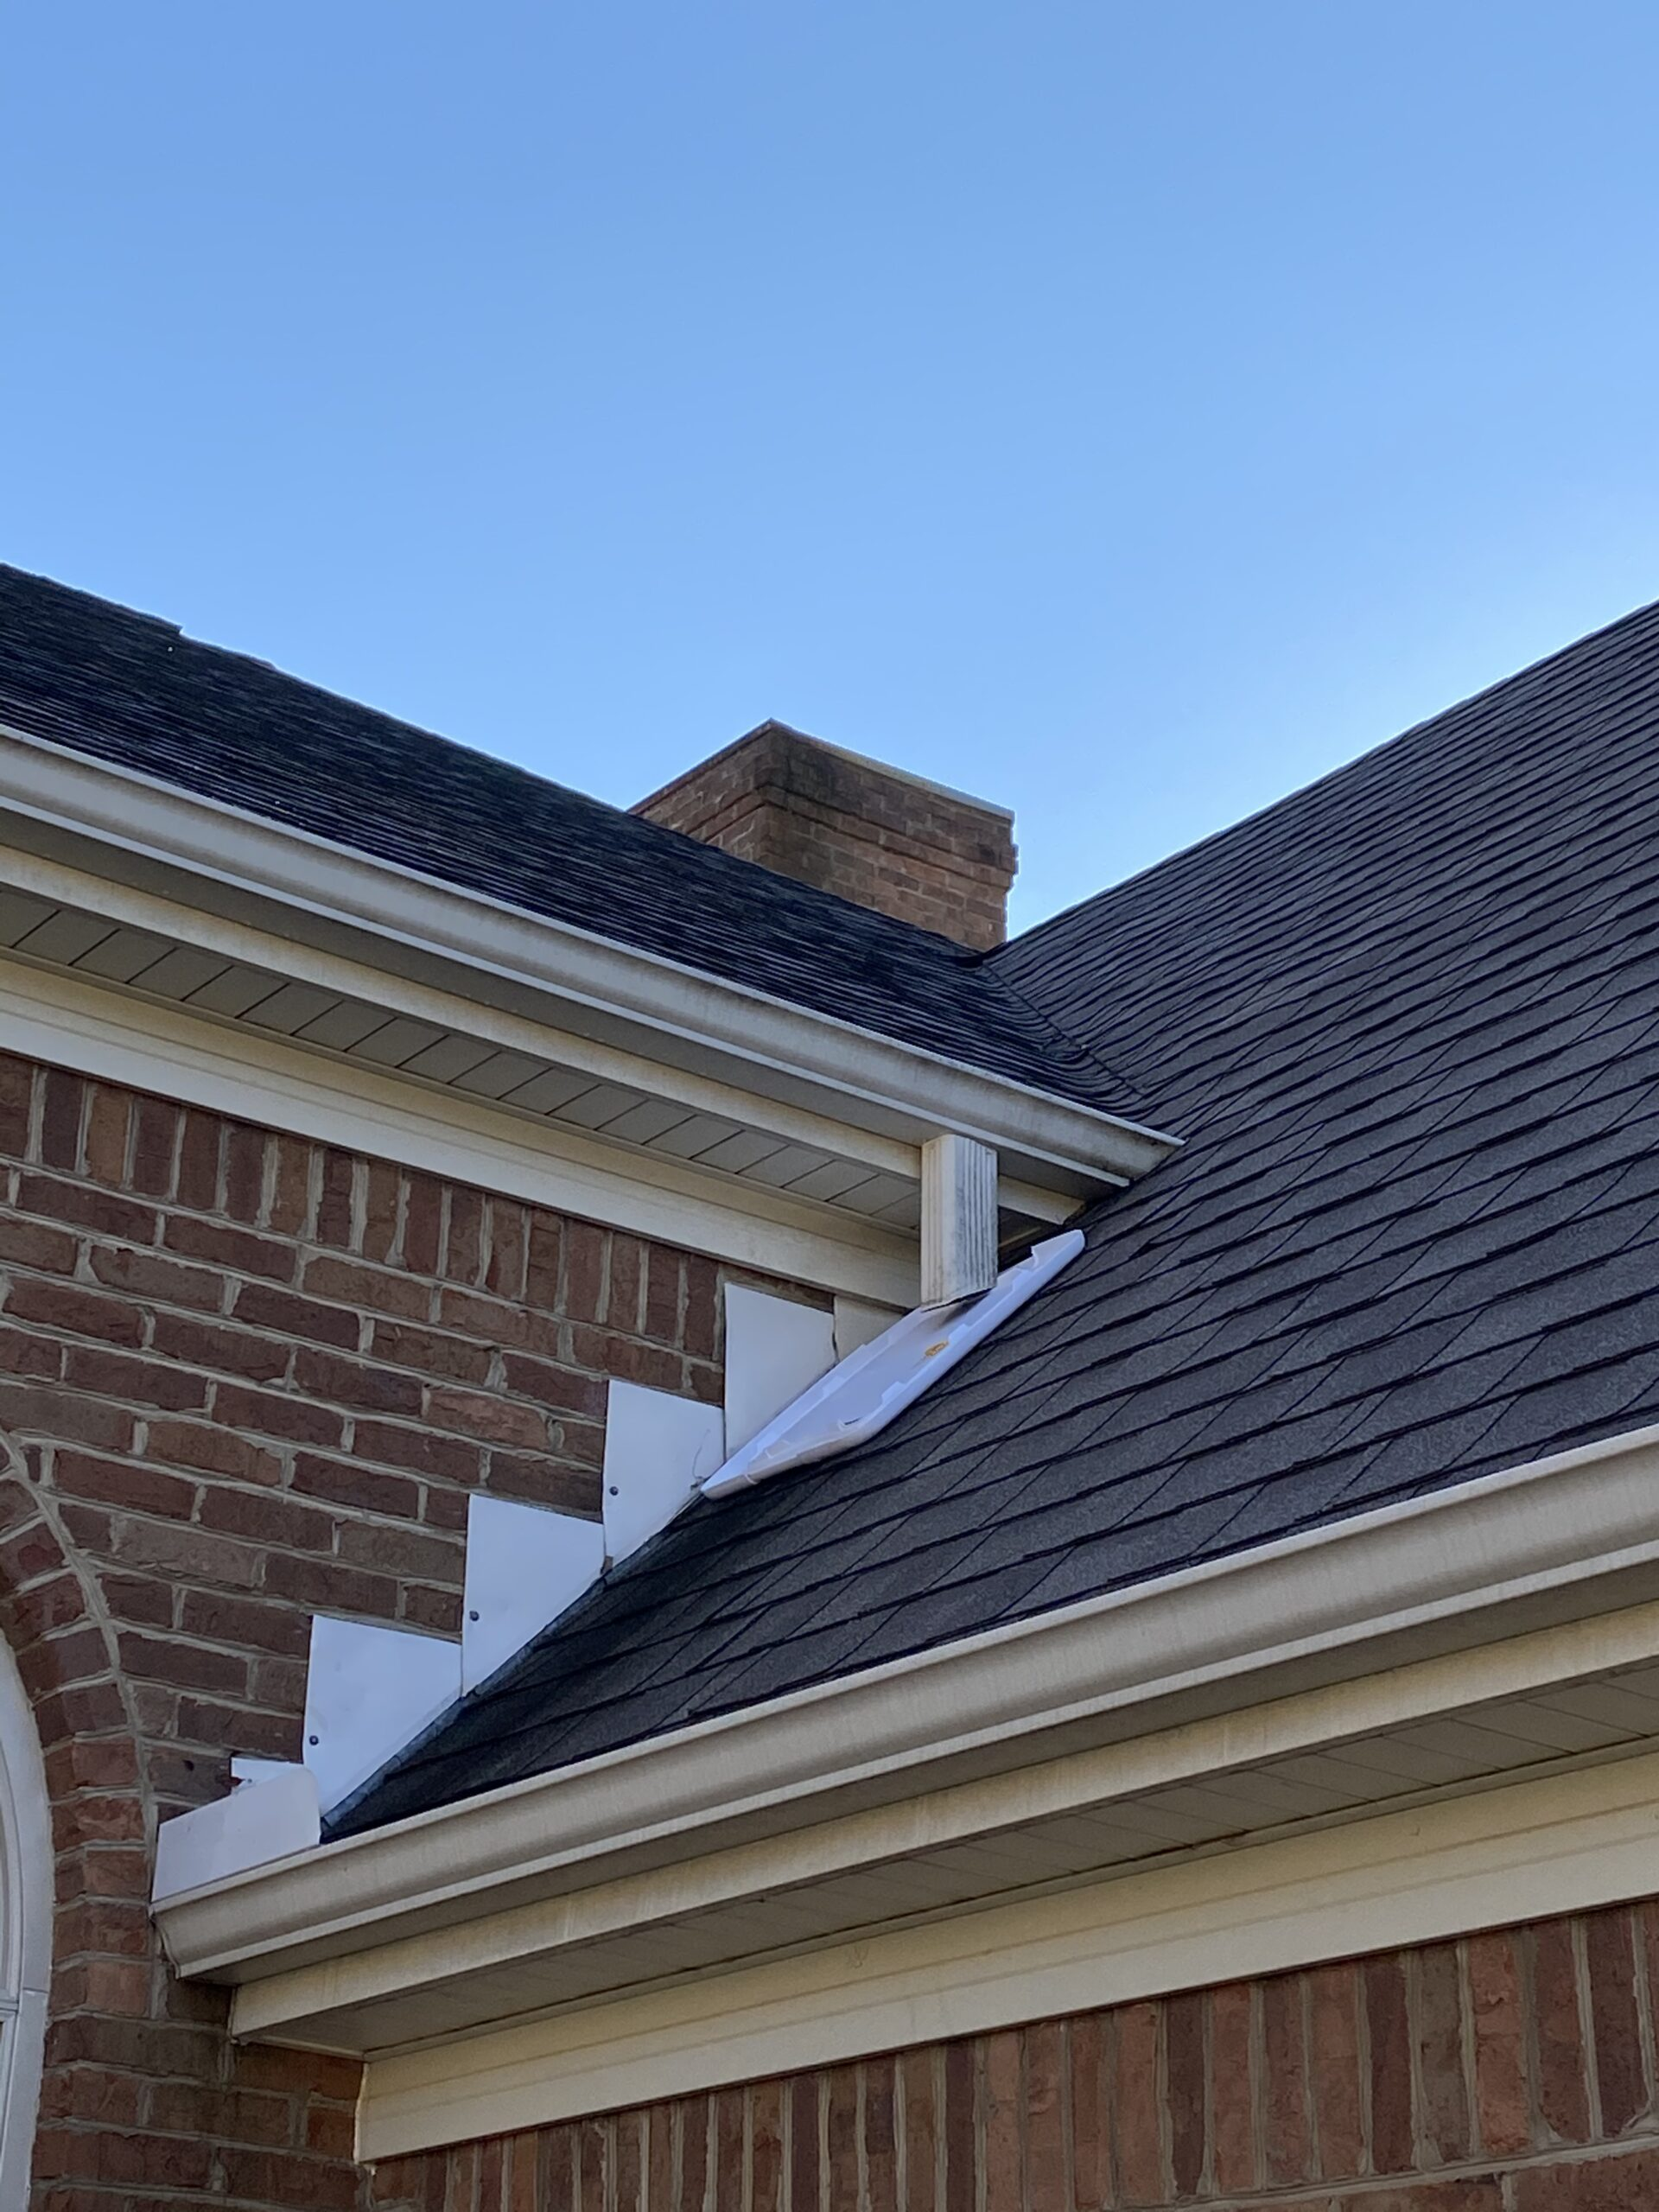 The a picture of a gutter that buts up against the roof possibly causing overflow